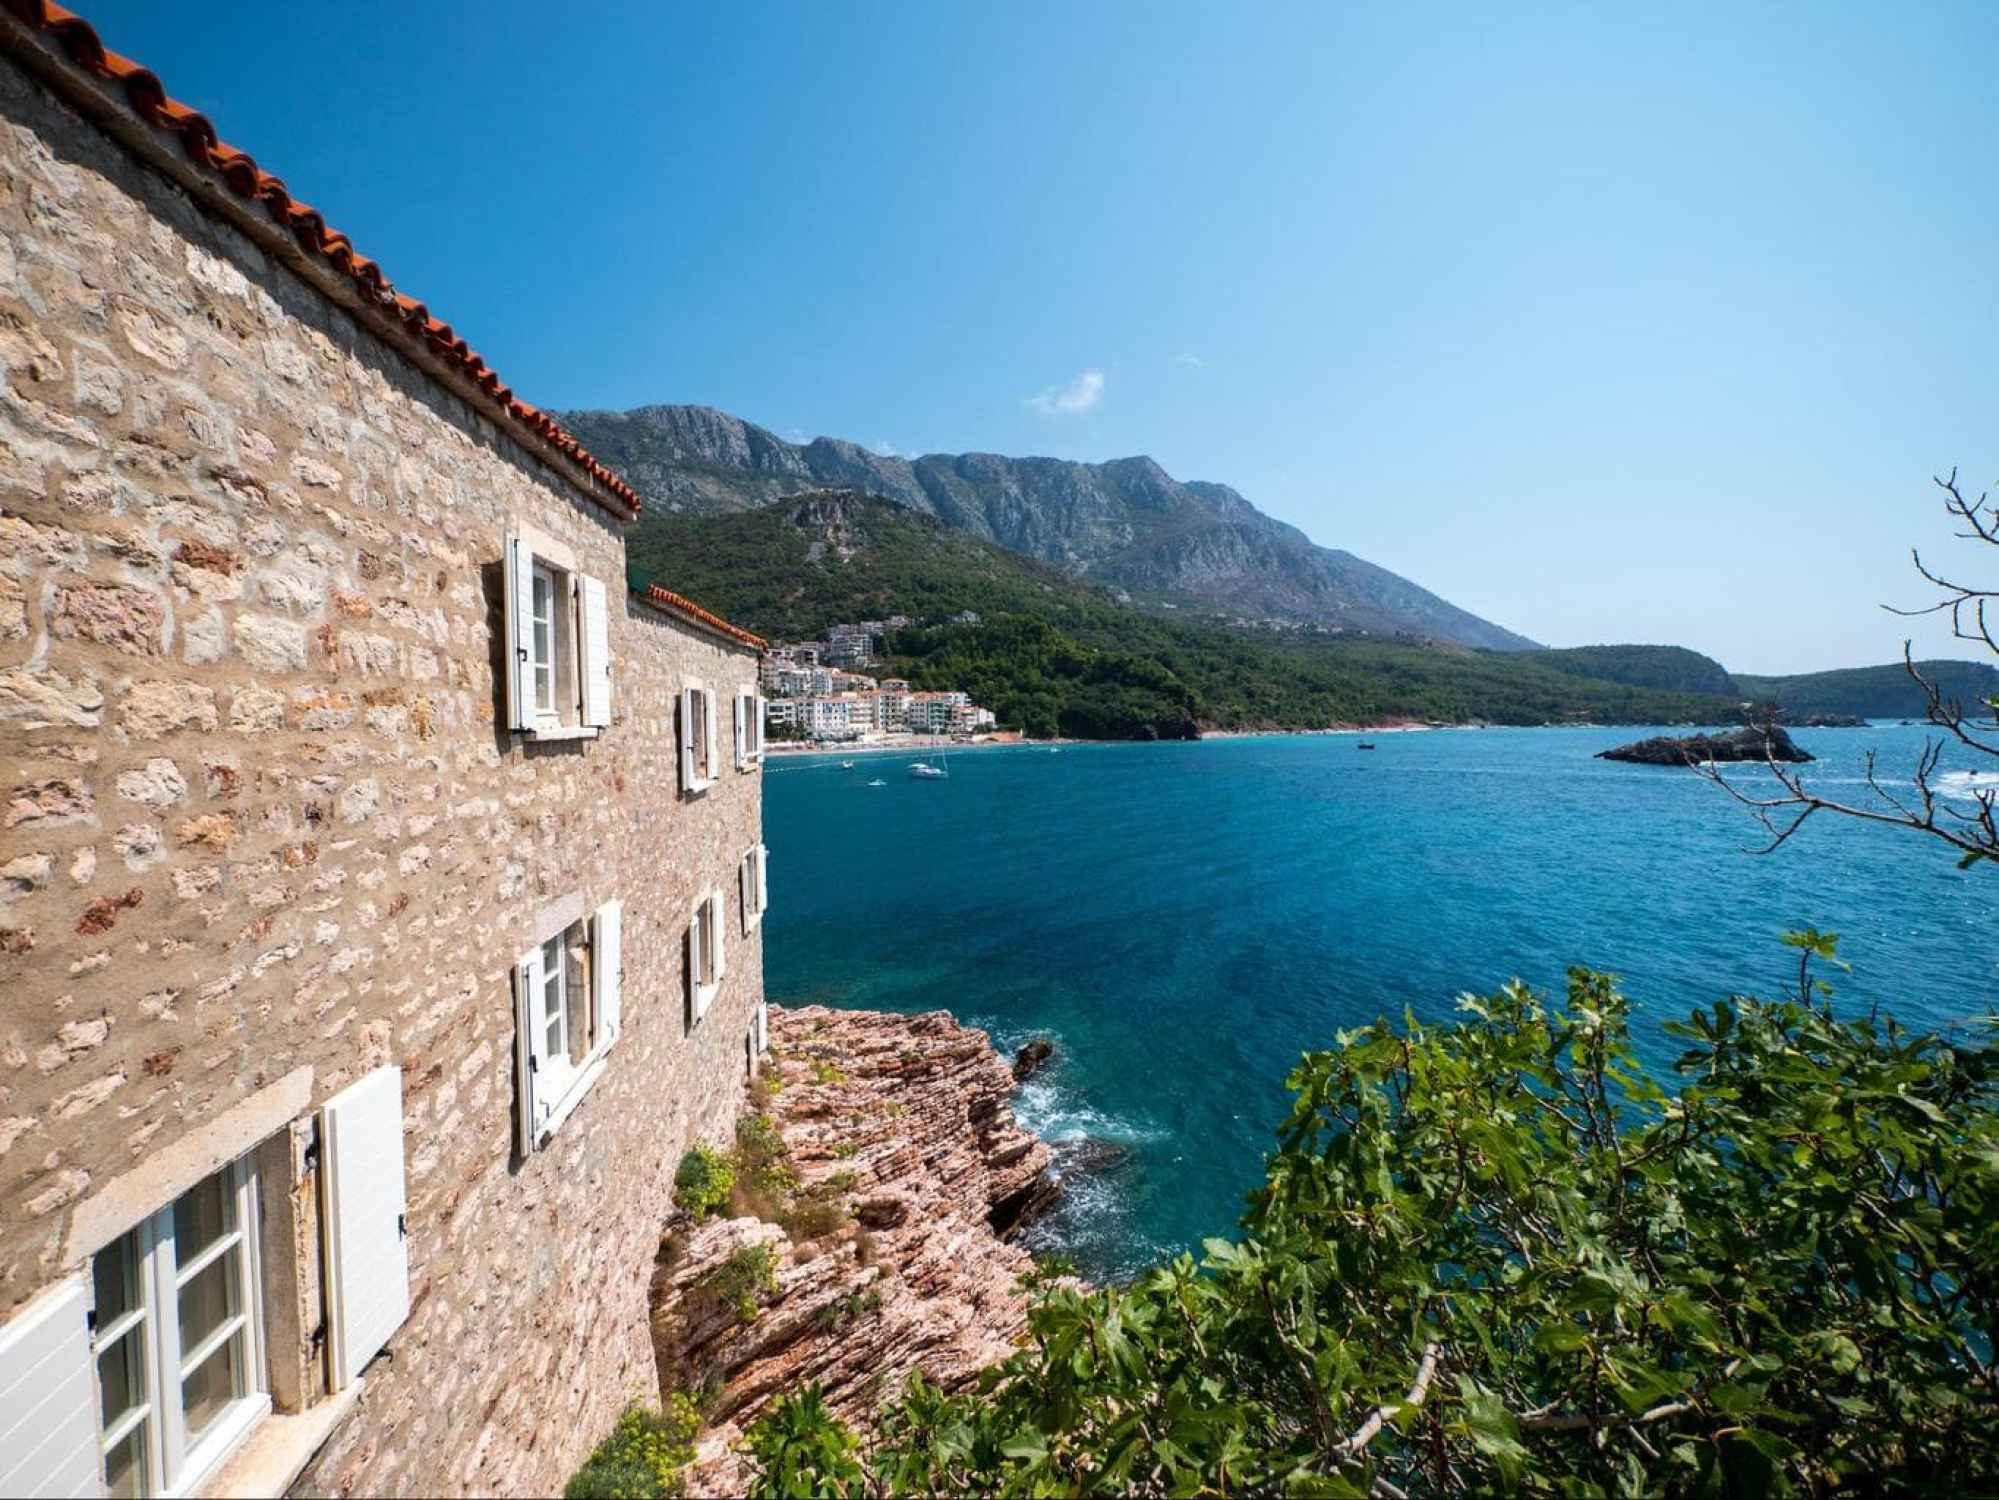 Sea views of Deluxe cottages